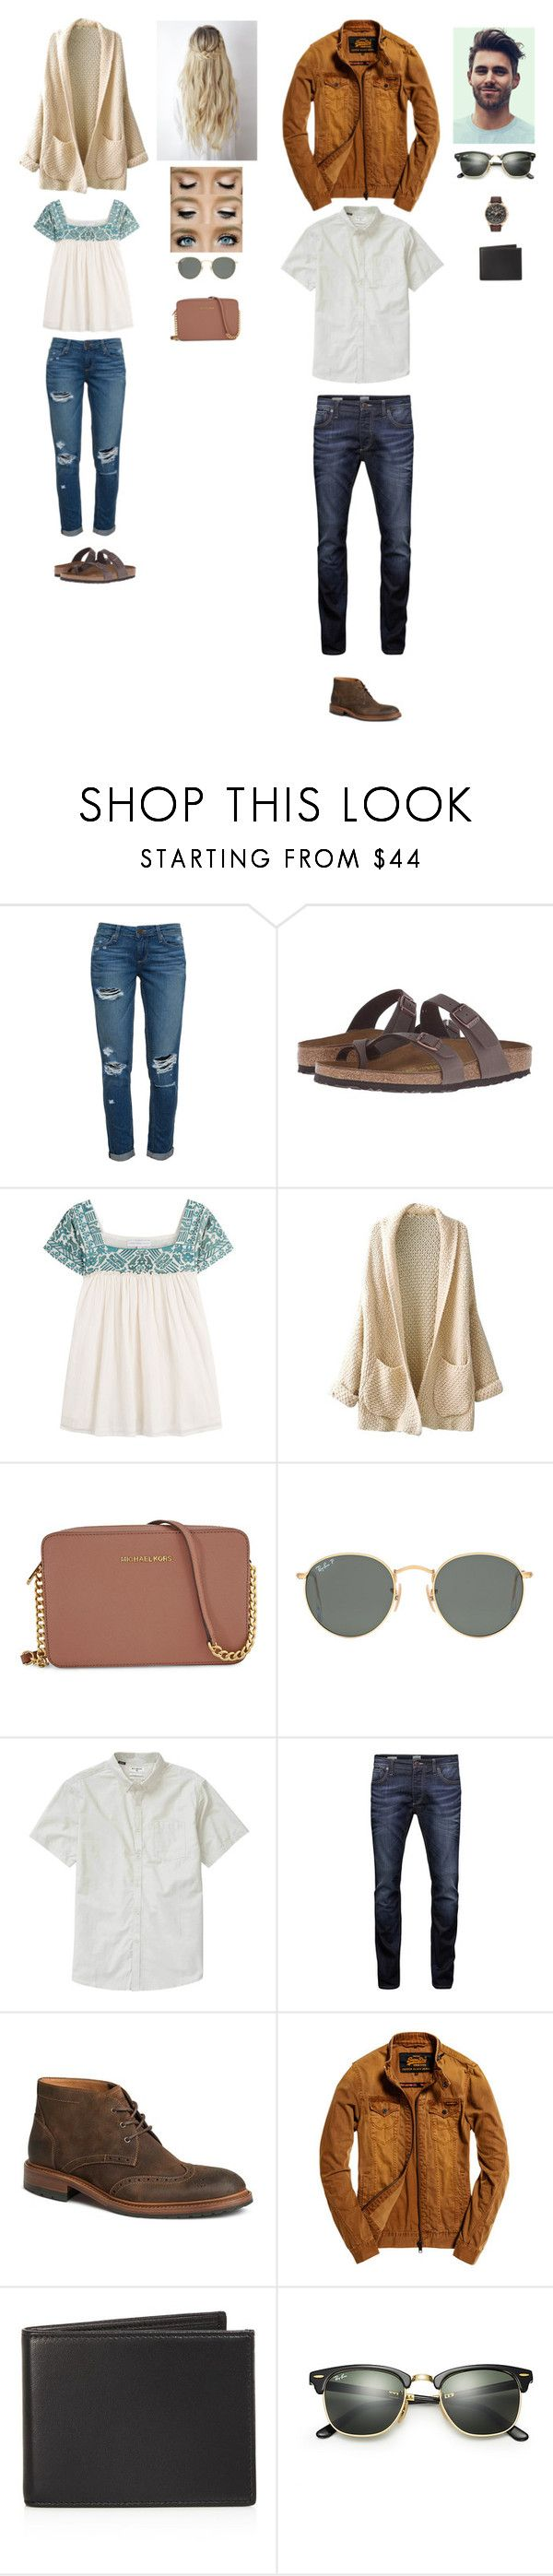 """""""Untitled #2129"""" by raftergirl ❤ liked on Polyvore featuring Paige Denim, Birkenstock, Christophe Sauvat, Michael Kors, Ray-Ban, Billabong, Jack & Jones, Trask, Superdry and The Men's Store"""